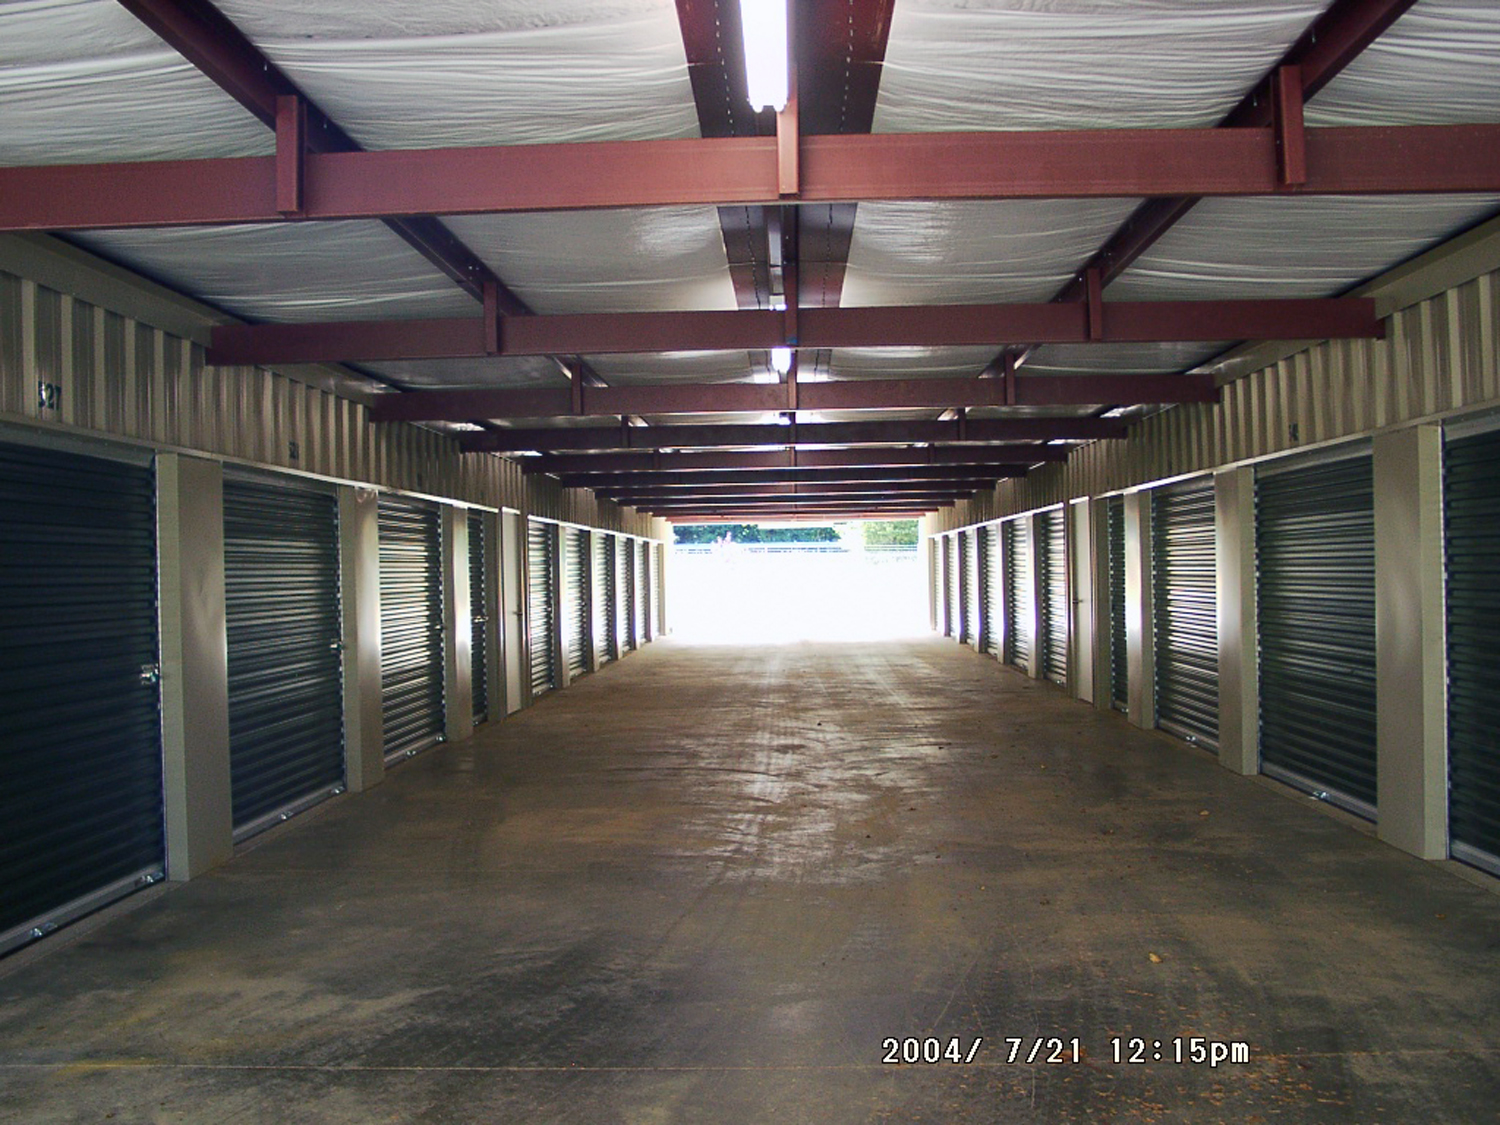 80177 Davenport All Storage 07-21-04 12